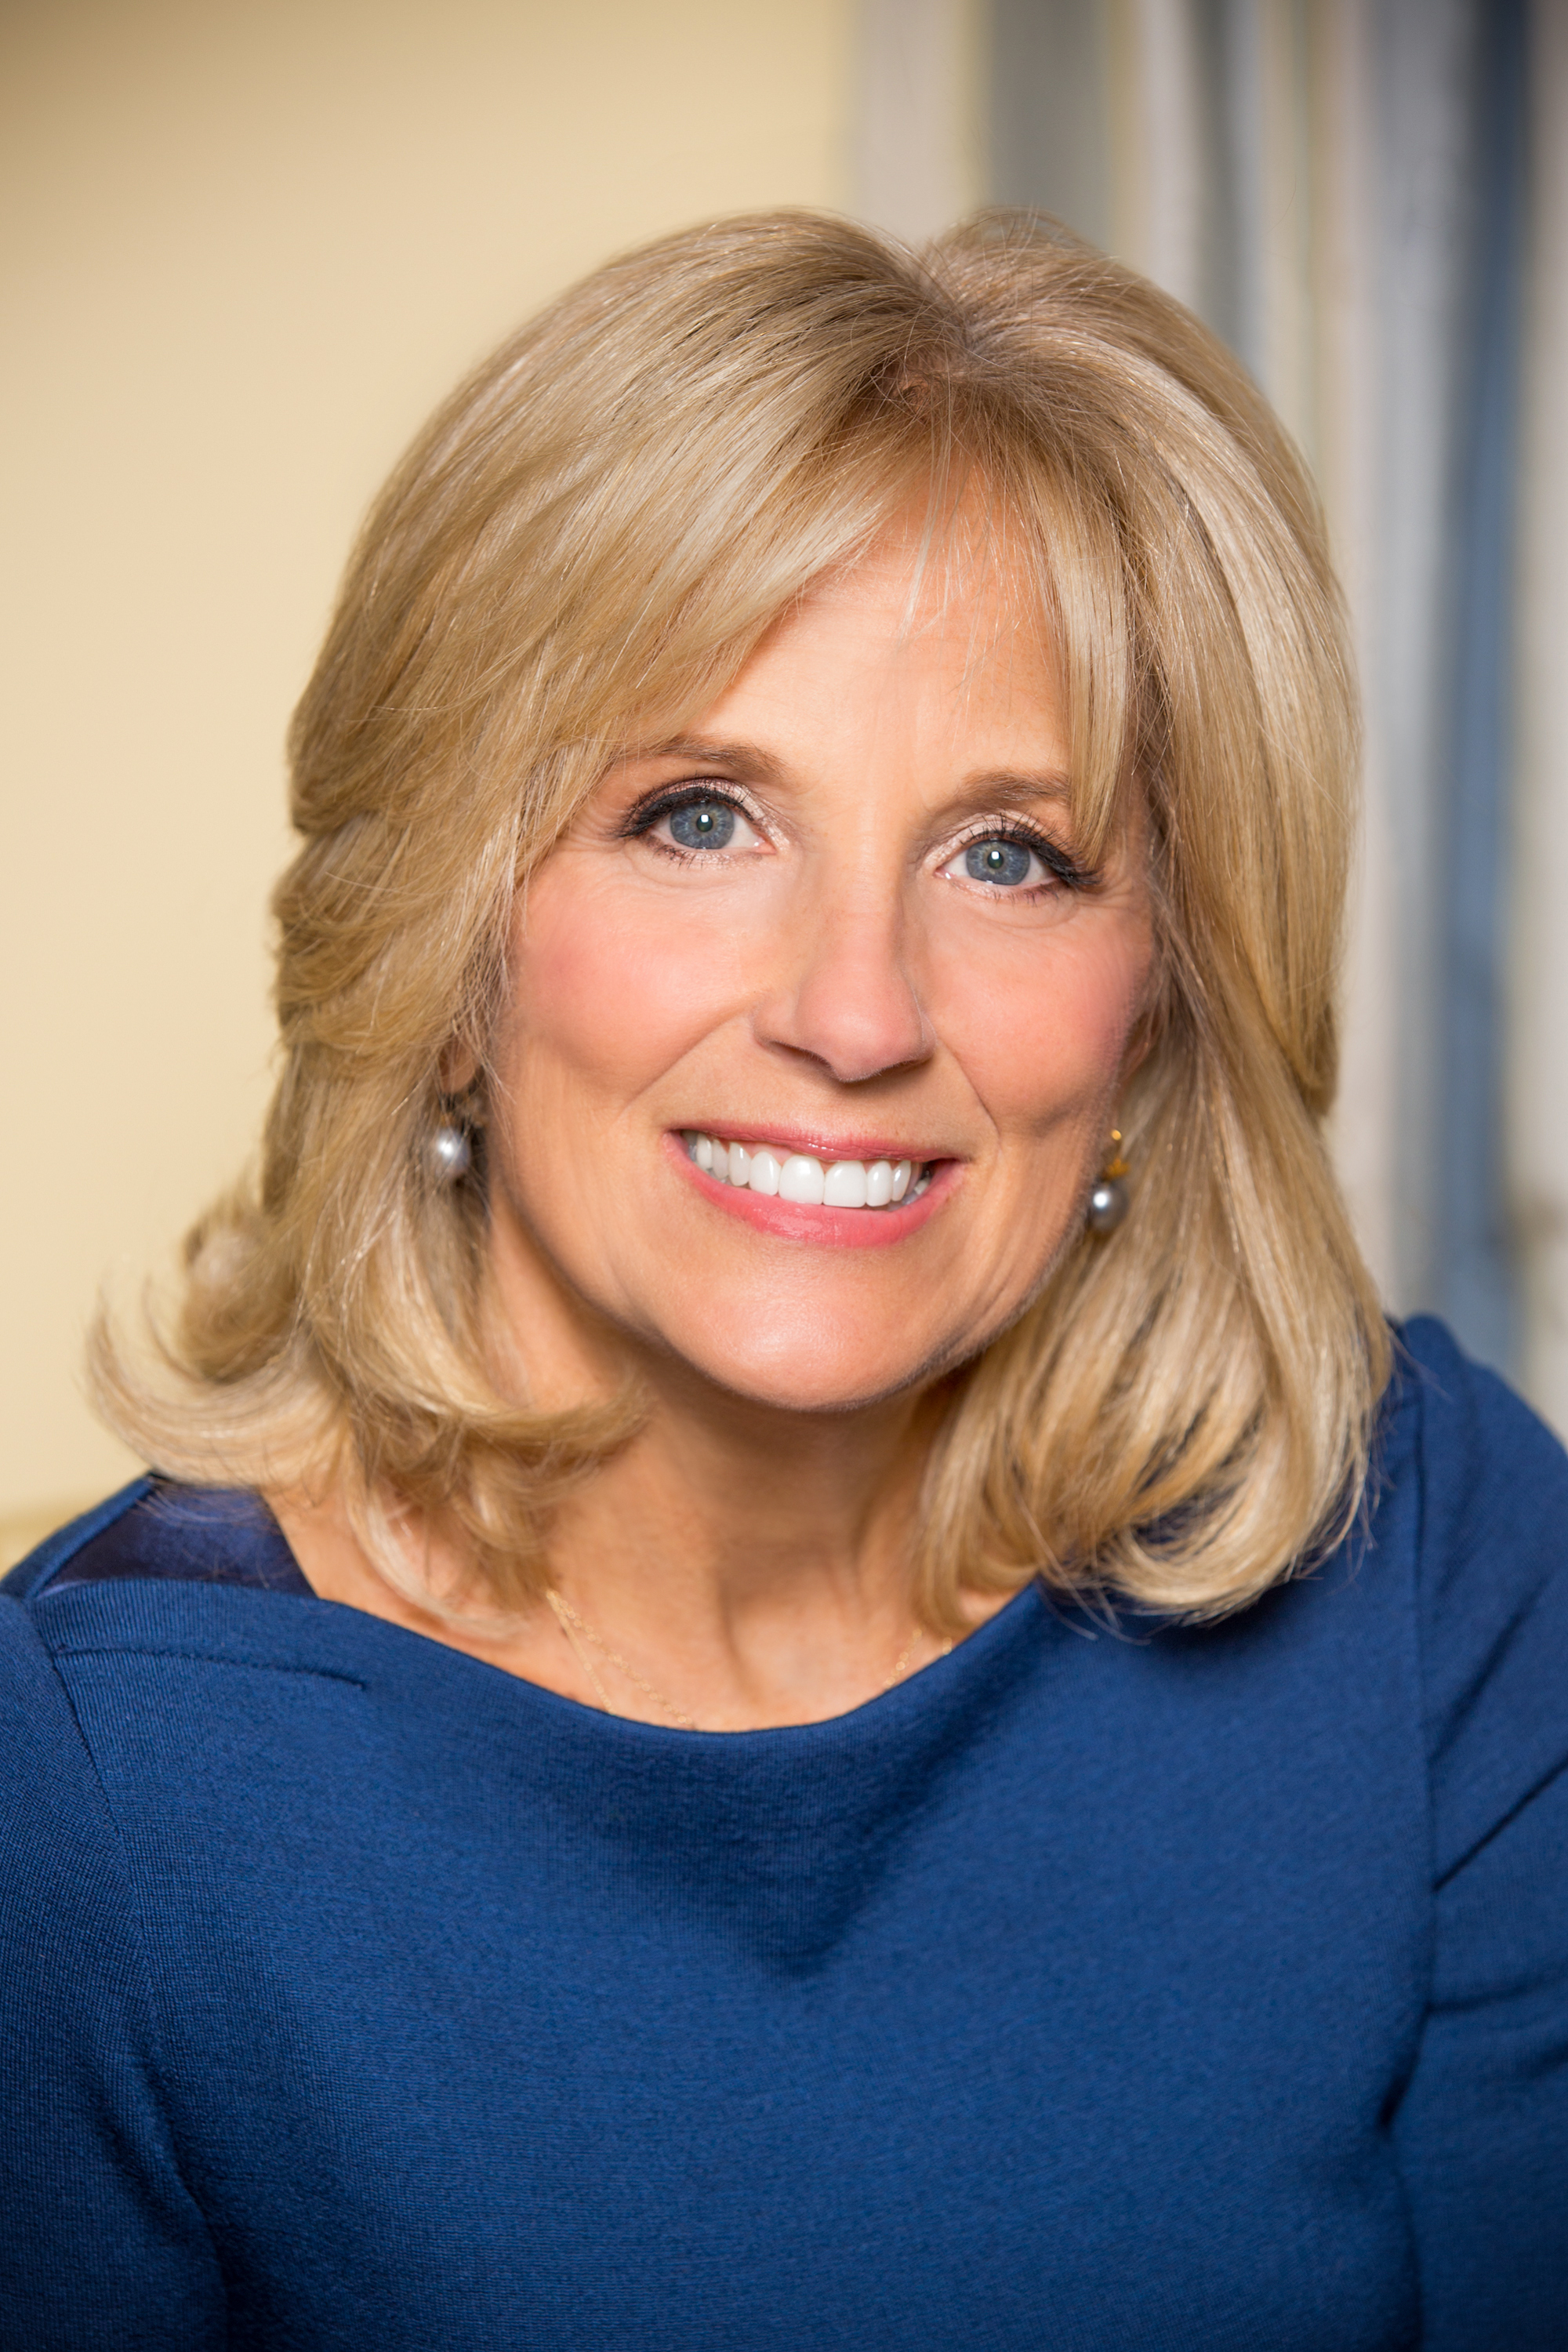 Former Second Lady Dr. Jill Biden's Full Remarks at the 2020 Democratic National Convention